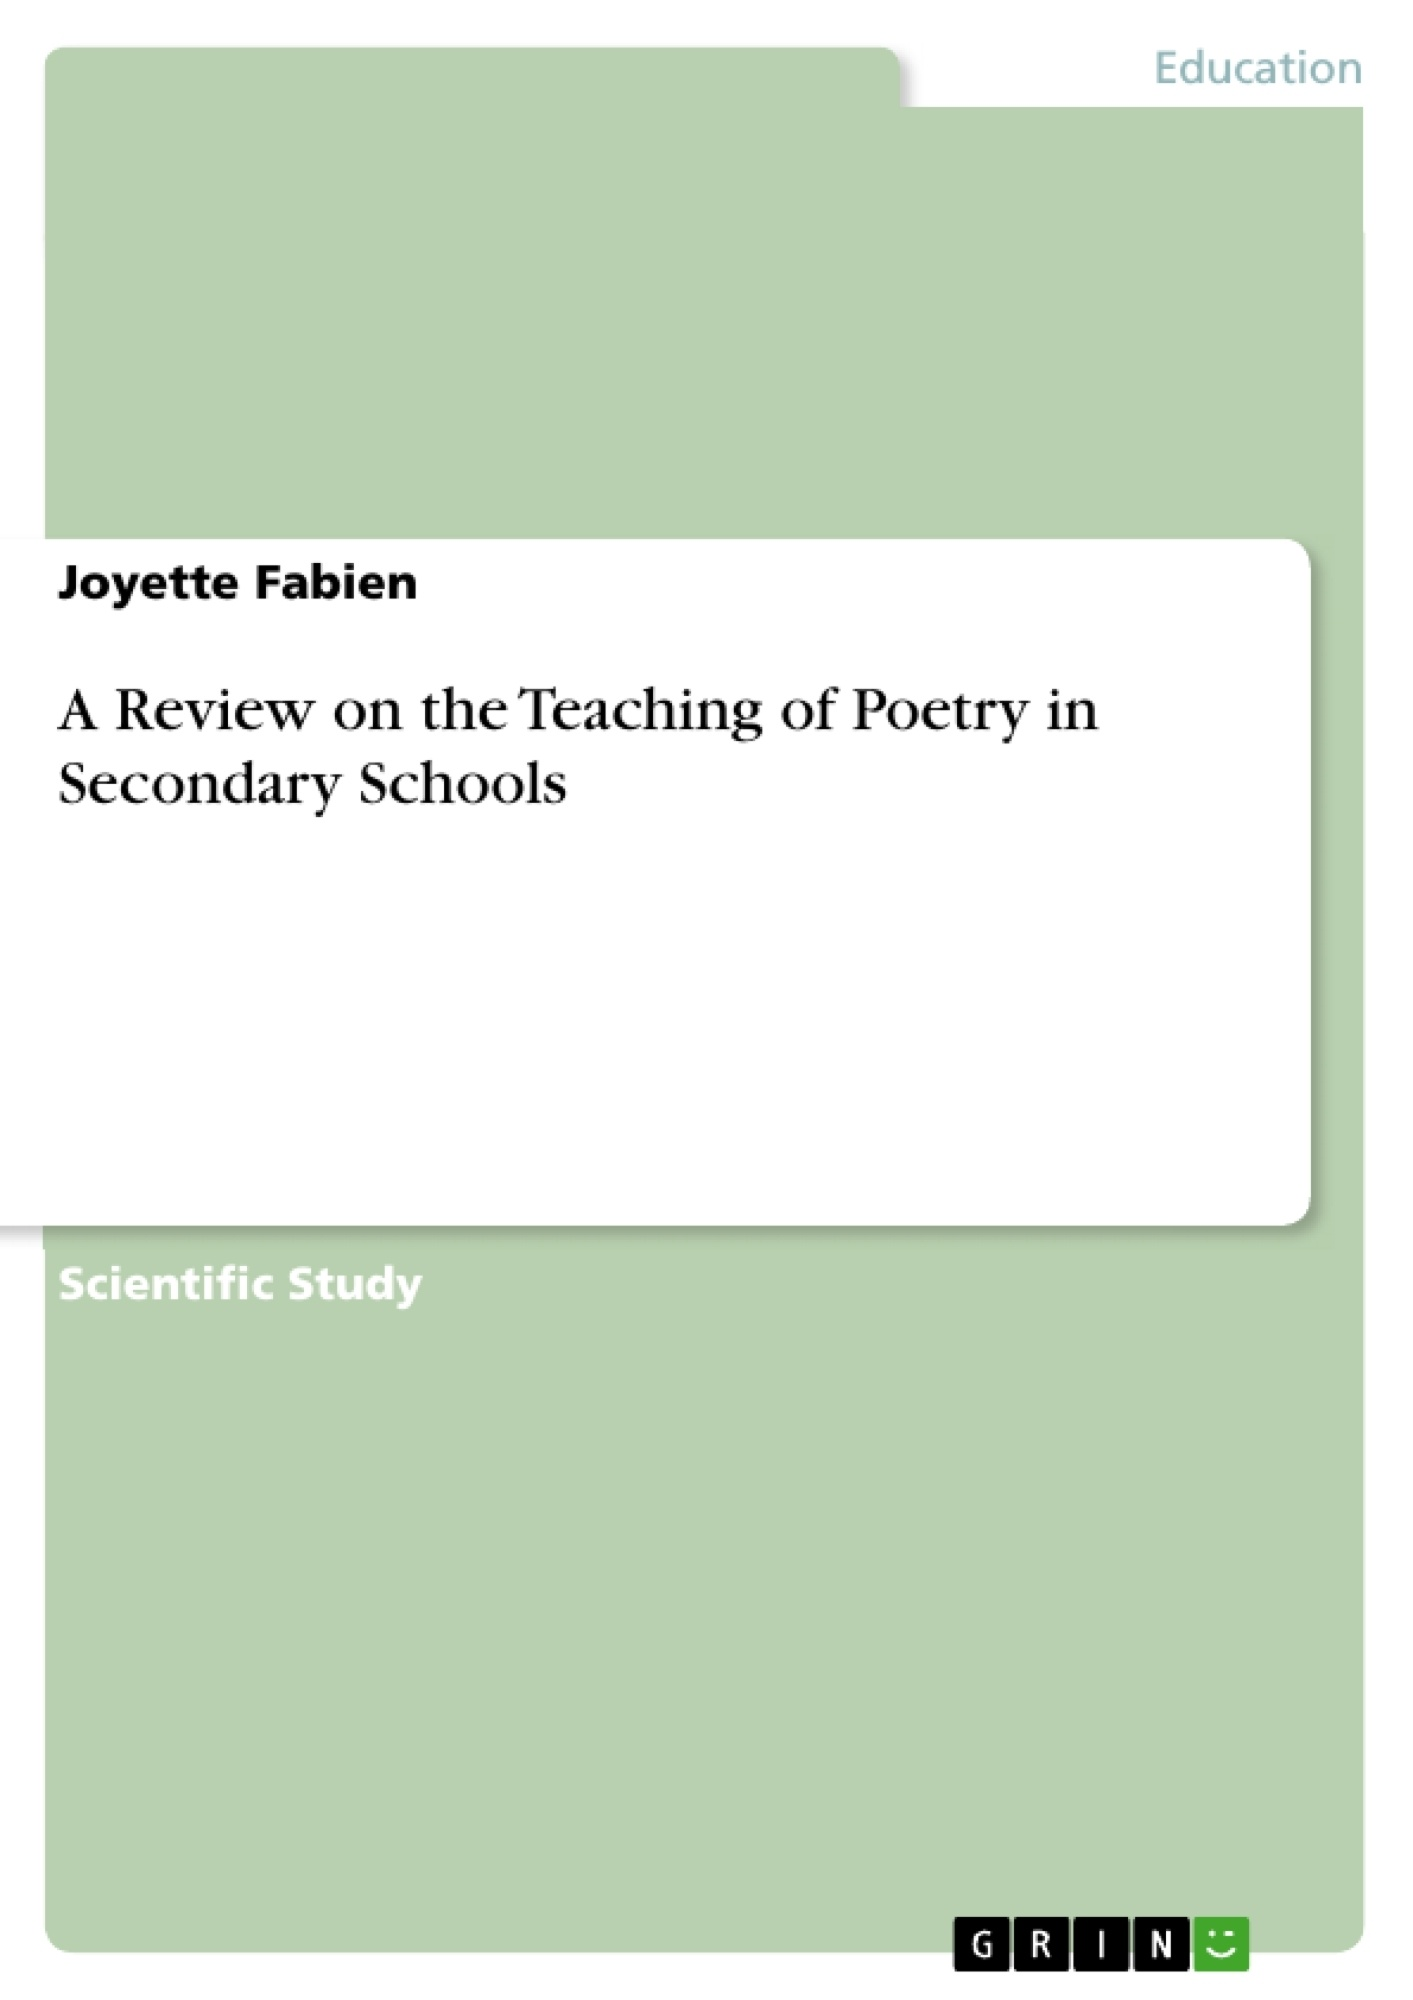 Title: A Review on the Teaching of Poetry in Secondary Schools